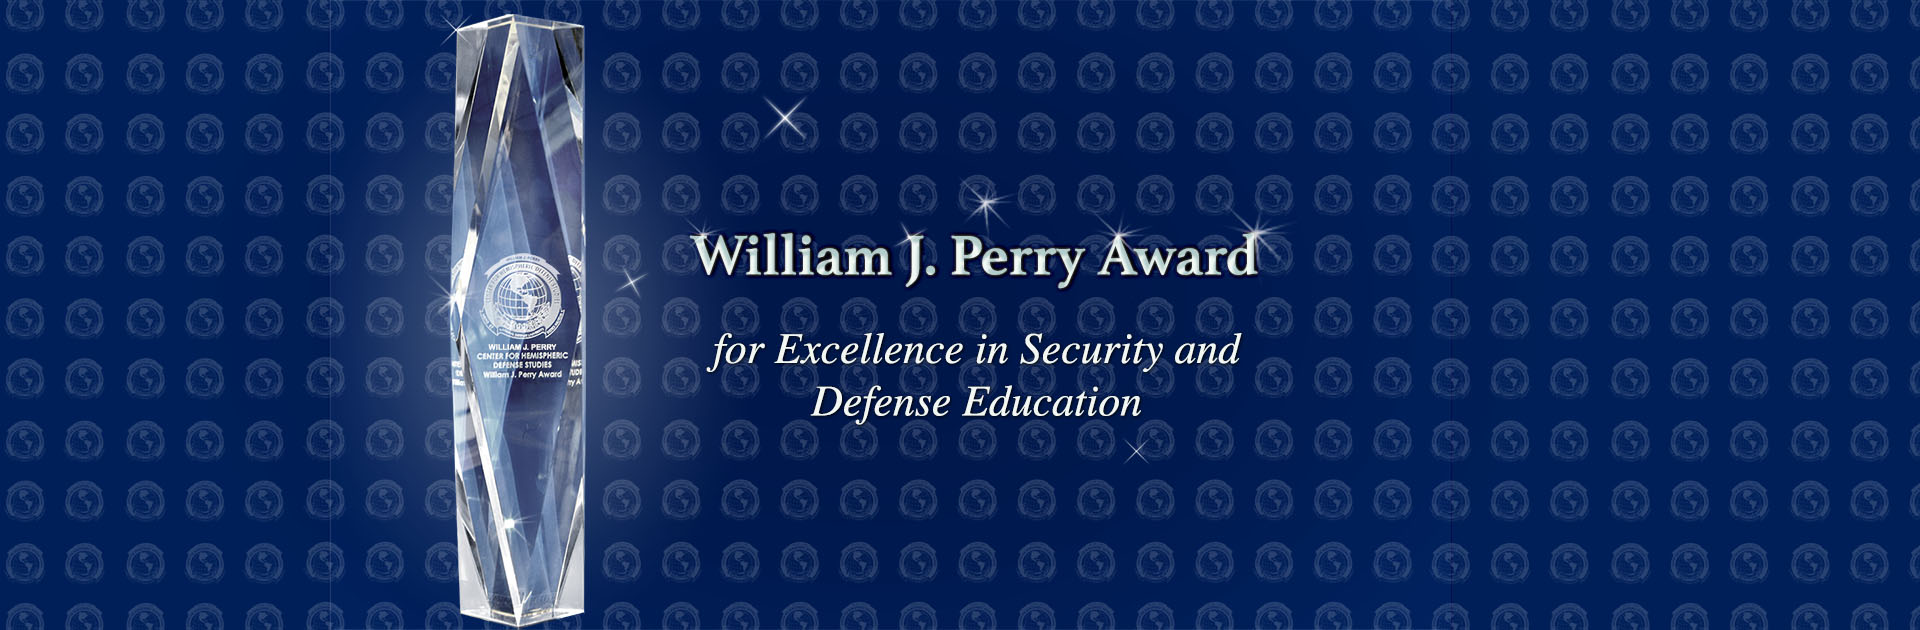 2011 William J. Perry Award for Excellence in Defense Education